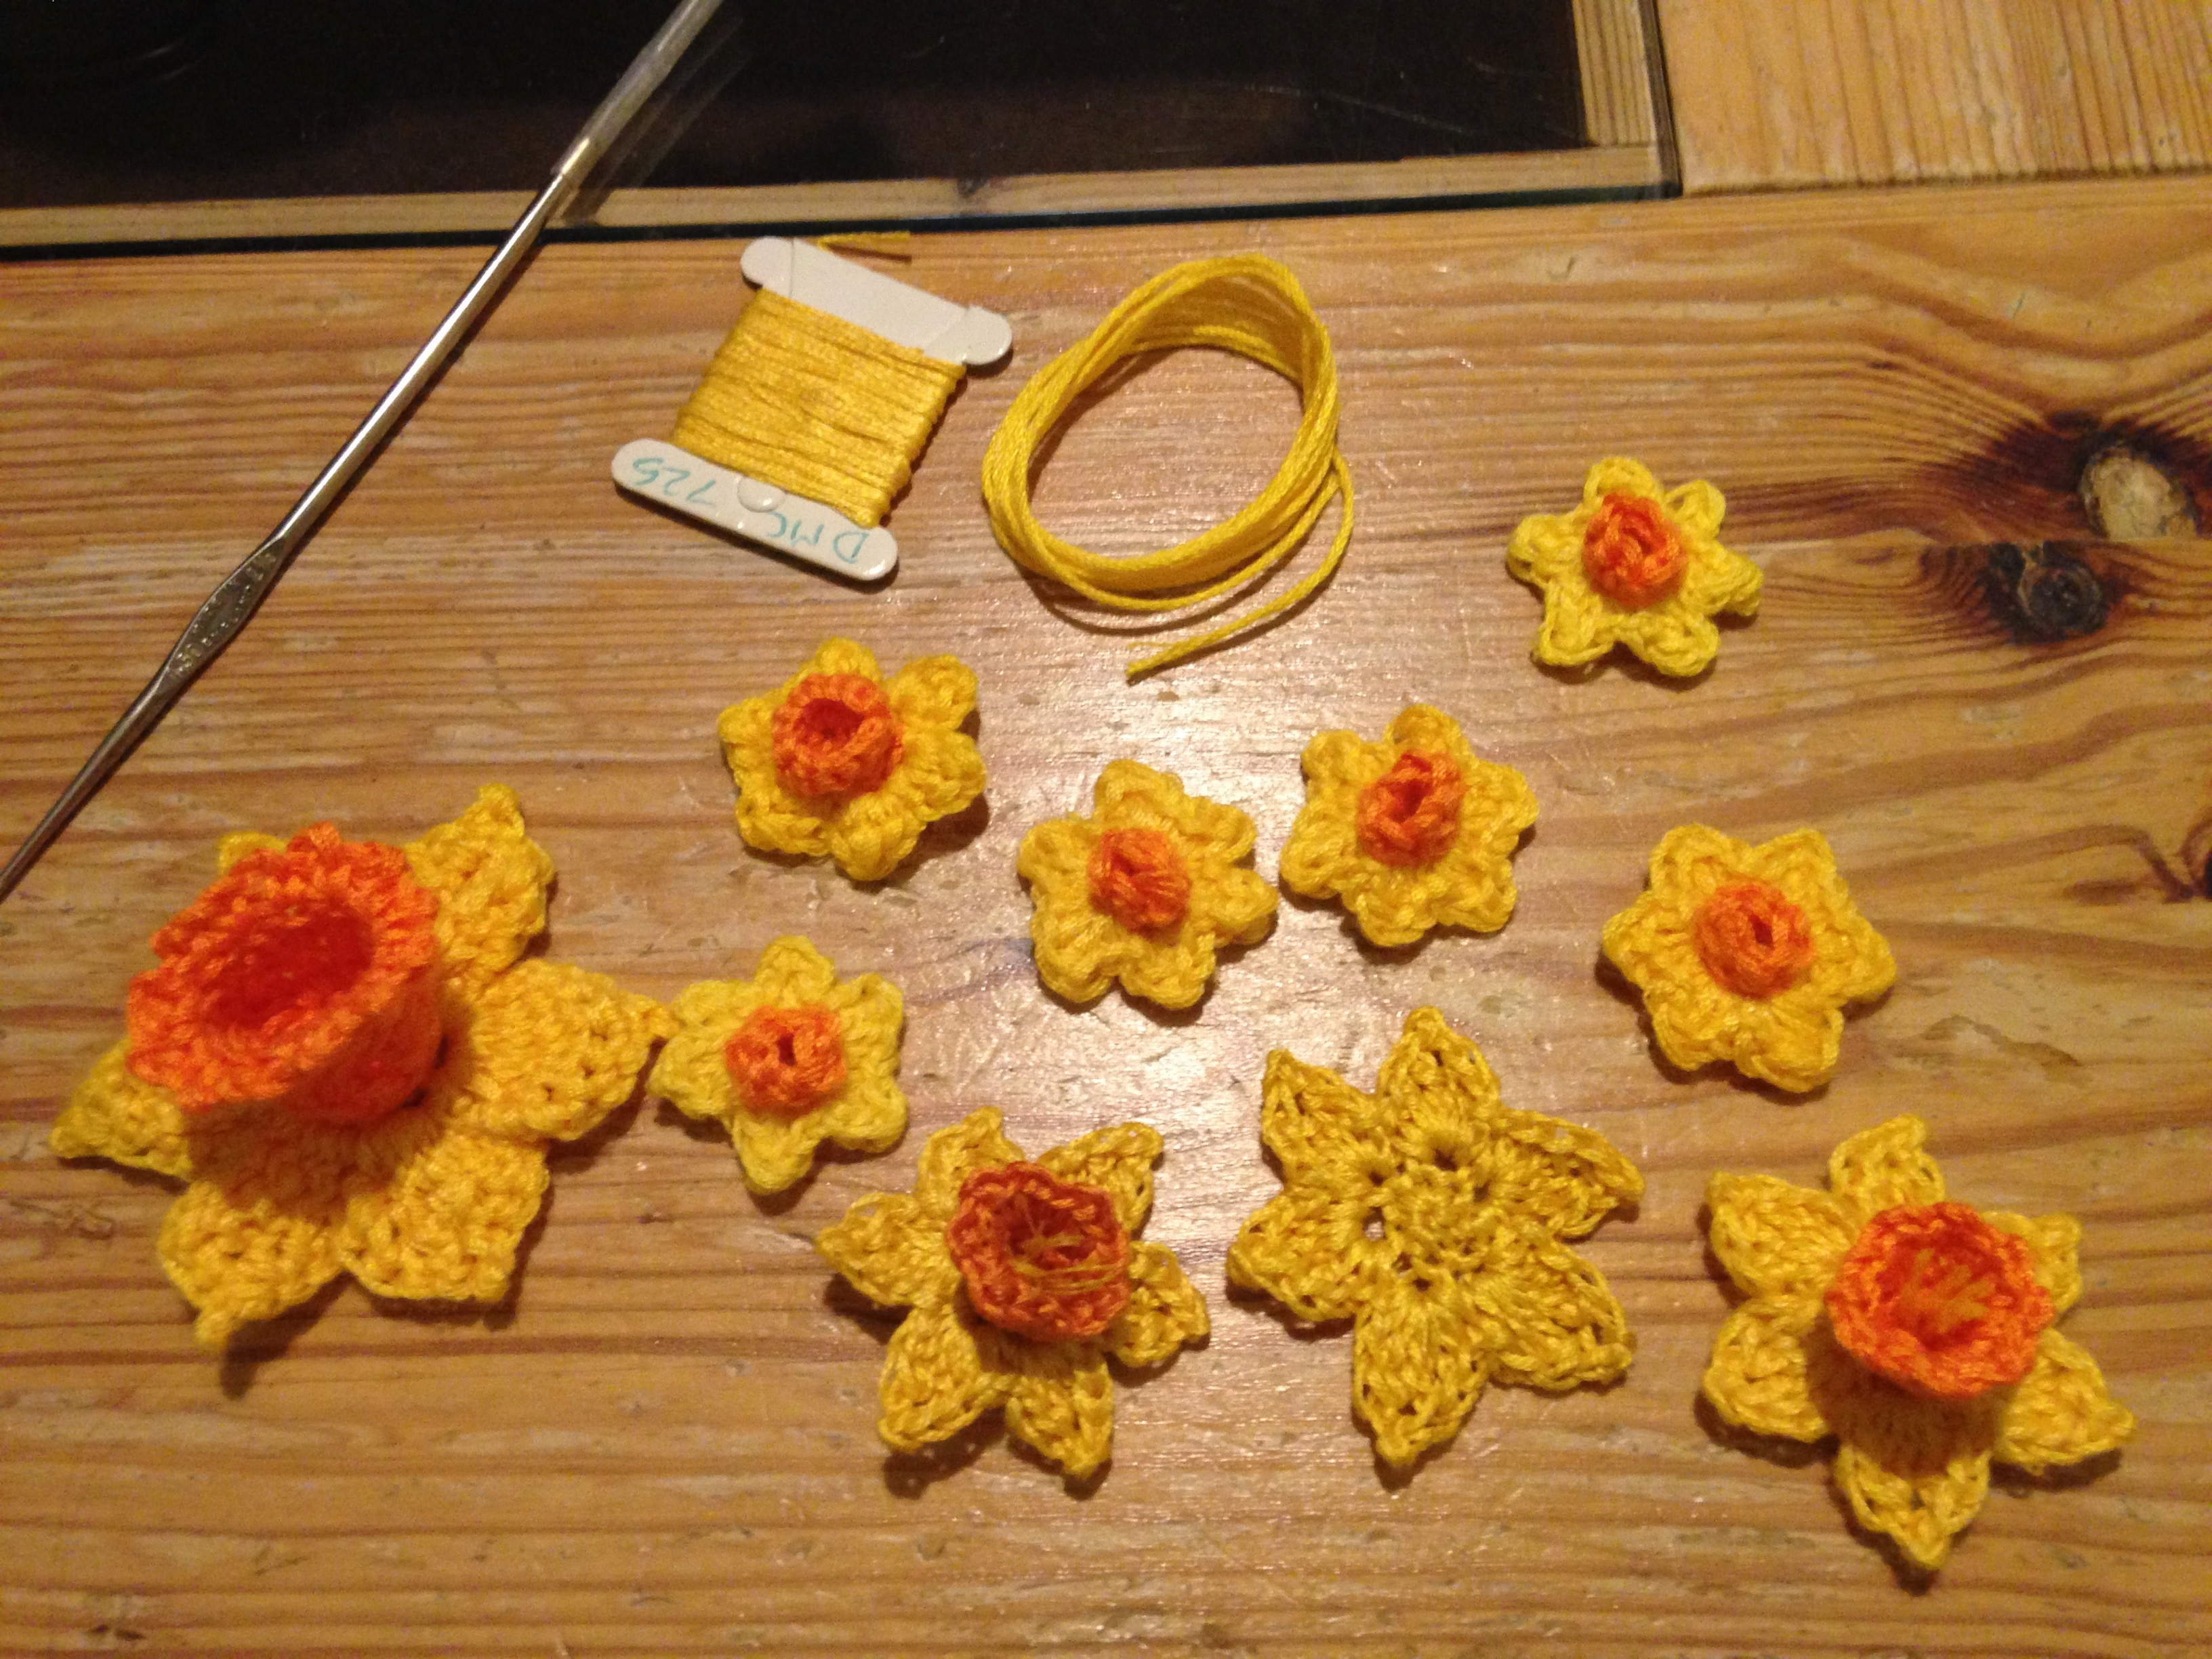 Developing Daffodil patterns, using a selection of different sizes, using different yarns and shades.